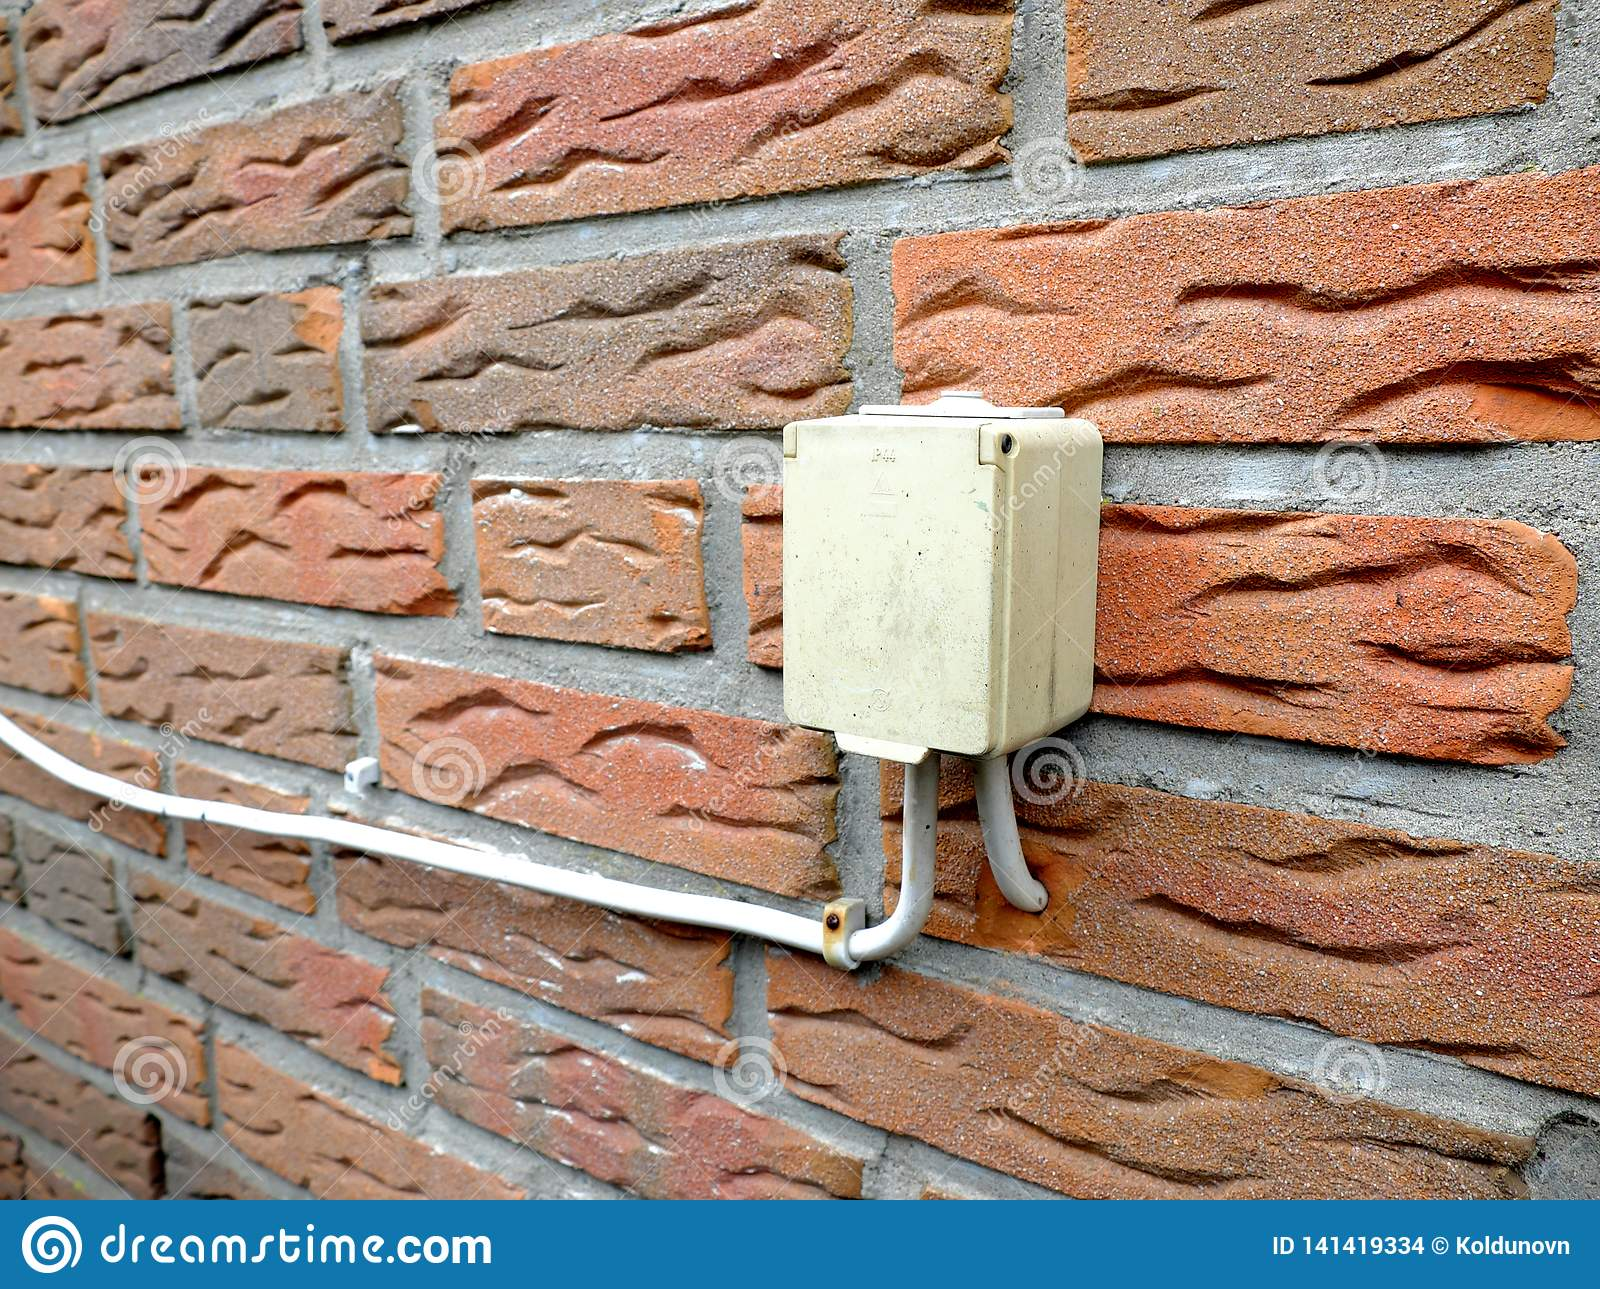 Outdoor electrical socket is mounted on the brick wall